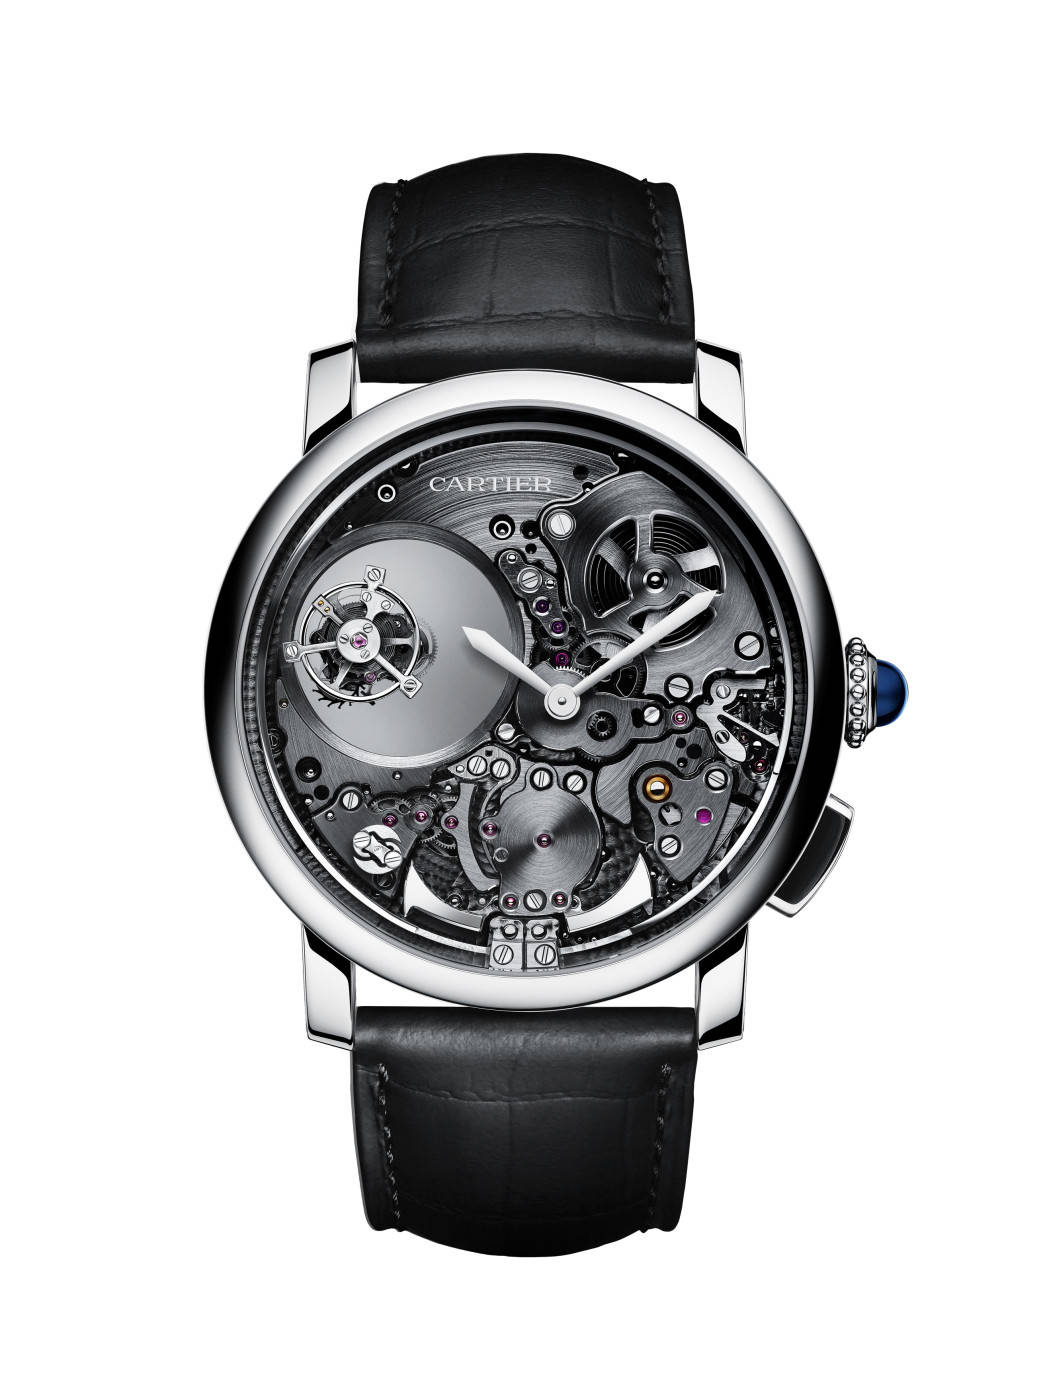 06B_Mysterious_Double_Tourbillon_watch_WHRO0023